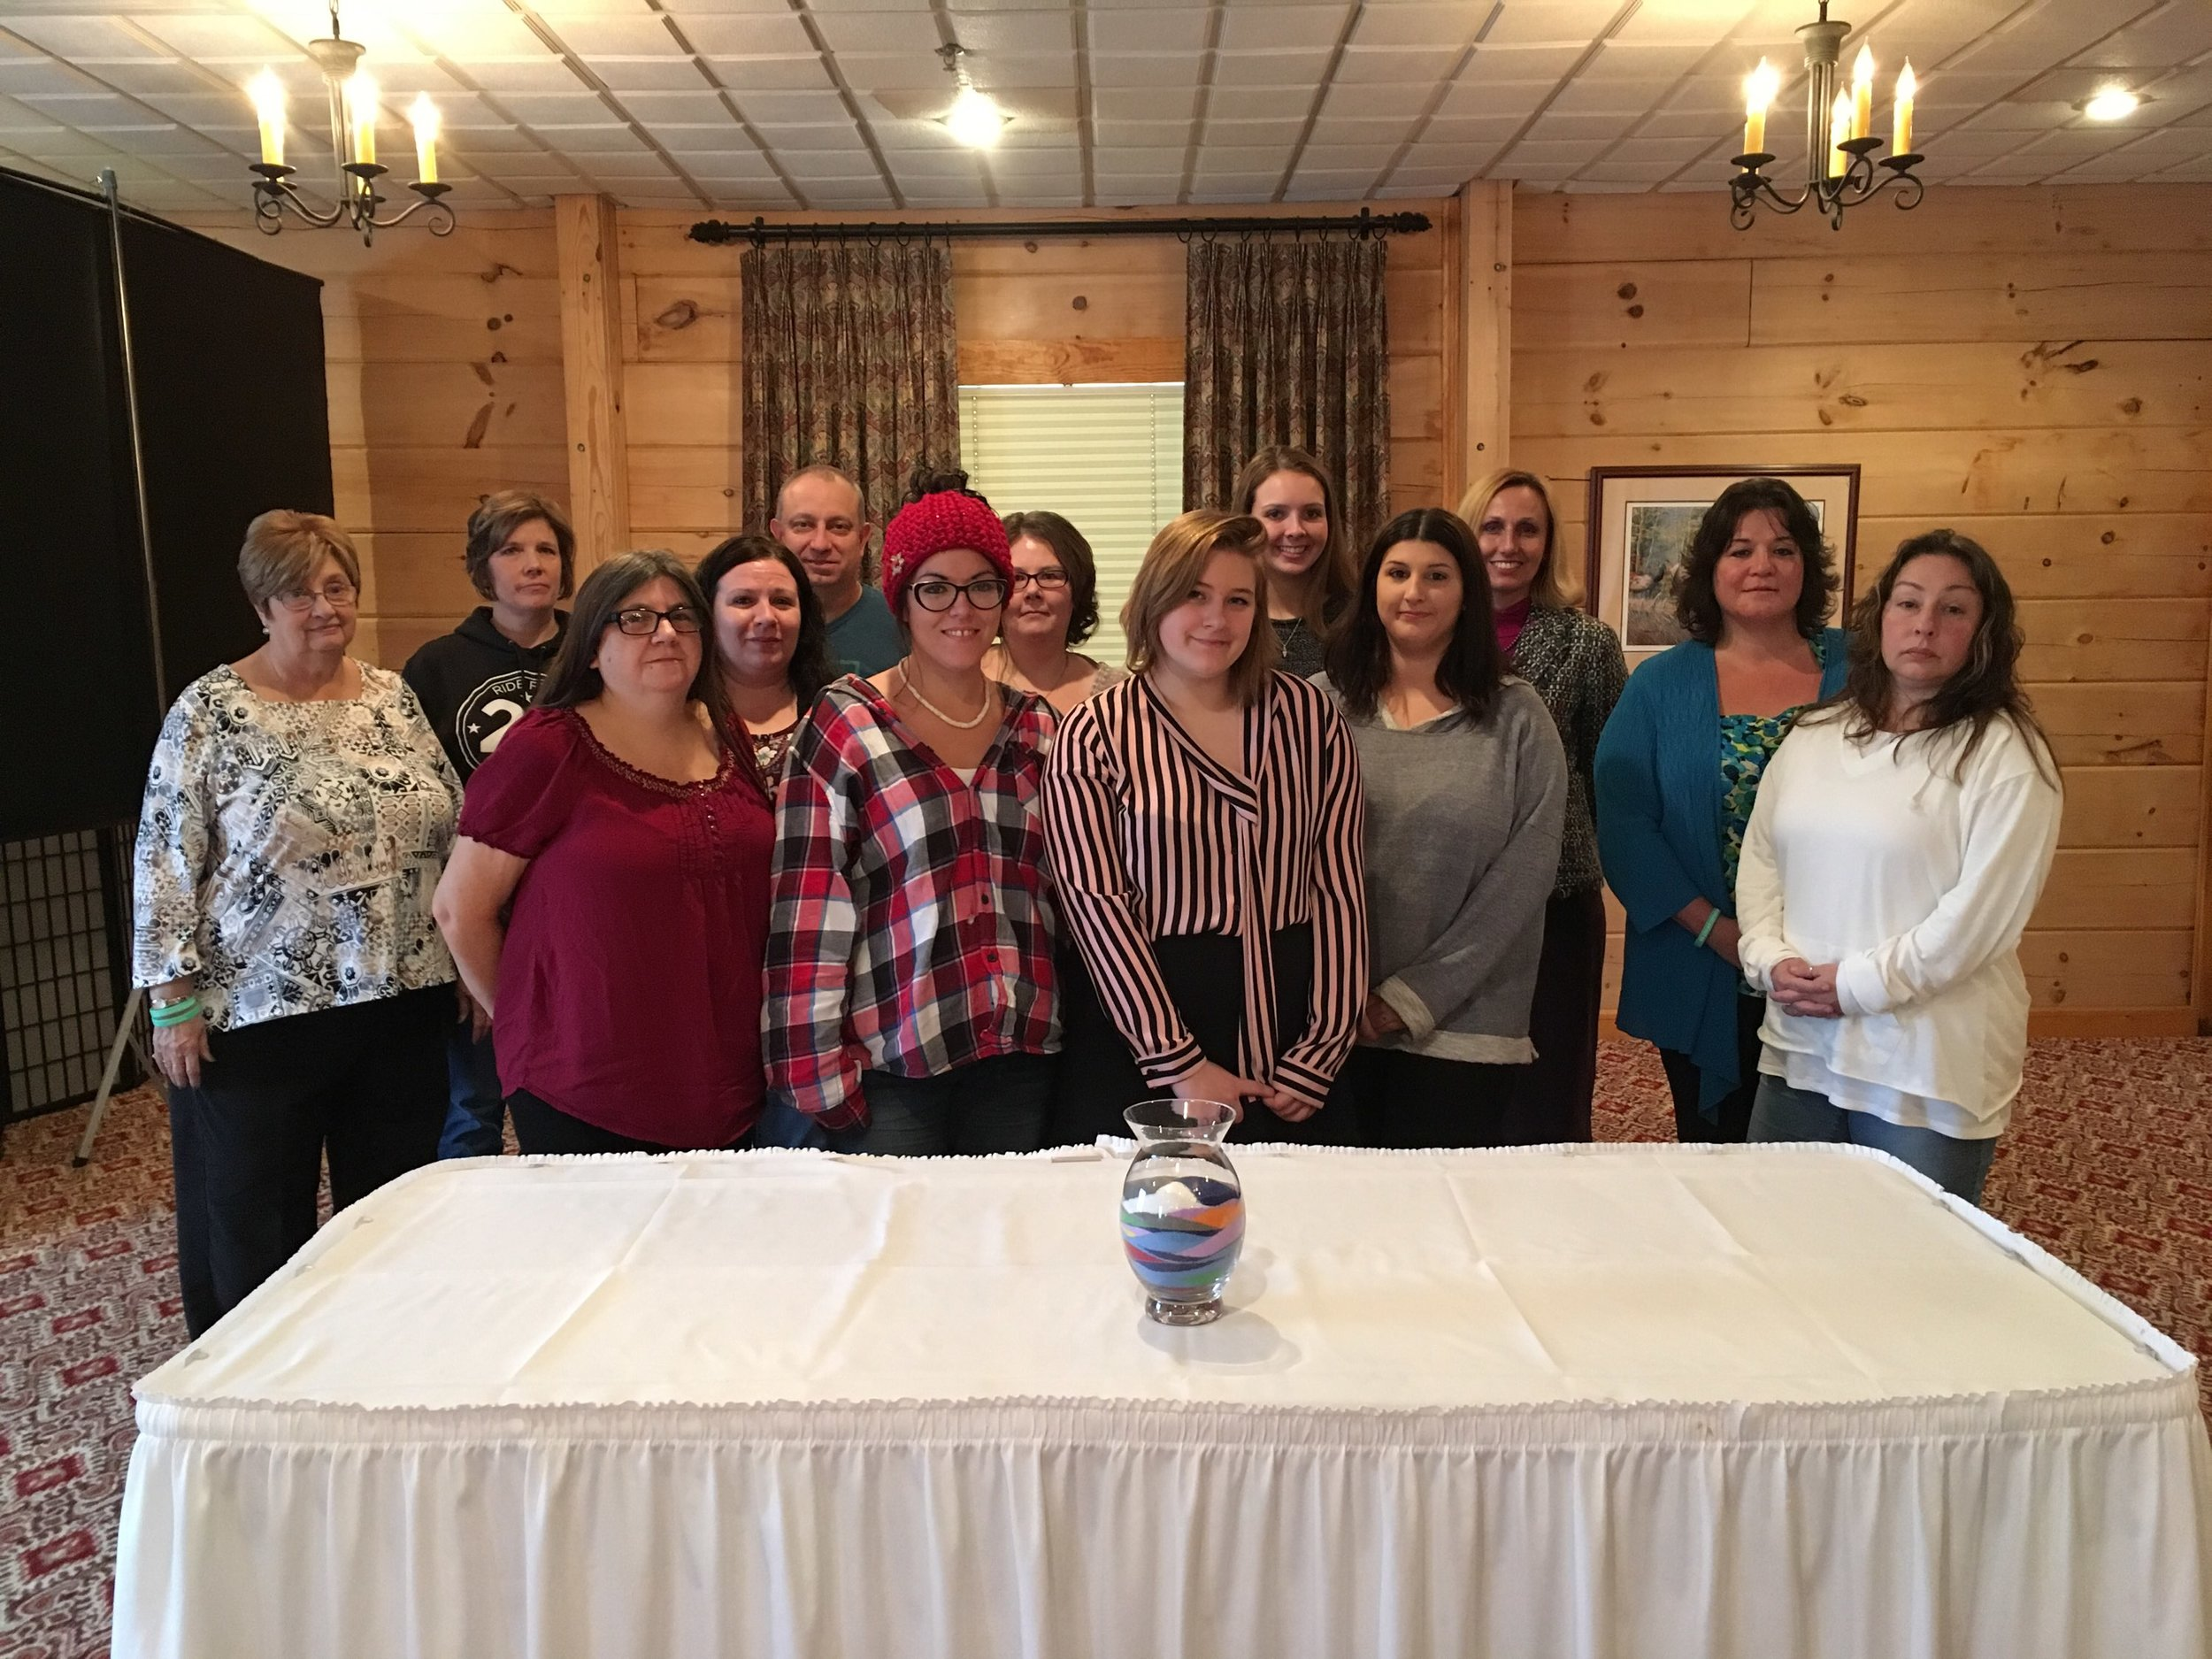 Elk County Survivors of Suicide Event - On Saturday, November 17th, thousands of people gathered to attend events around the world, coming together with other survivors of suicide loss to share stories and gain understanding and hope in their healing journey. Pictured above are the attendees of the Elk County Survivors of Suicide Loss event hosted by Dickinson Center, Inc. at the Red Fern. The event closed with a sand ceremony during which attendees chose sand colors representing the nature of their loss/reason for attending.